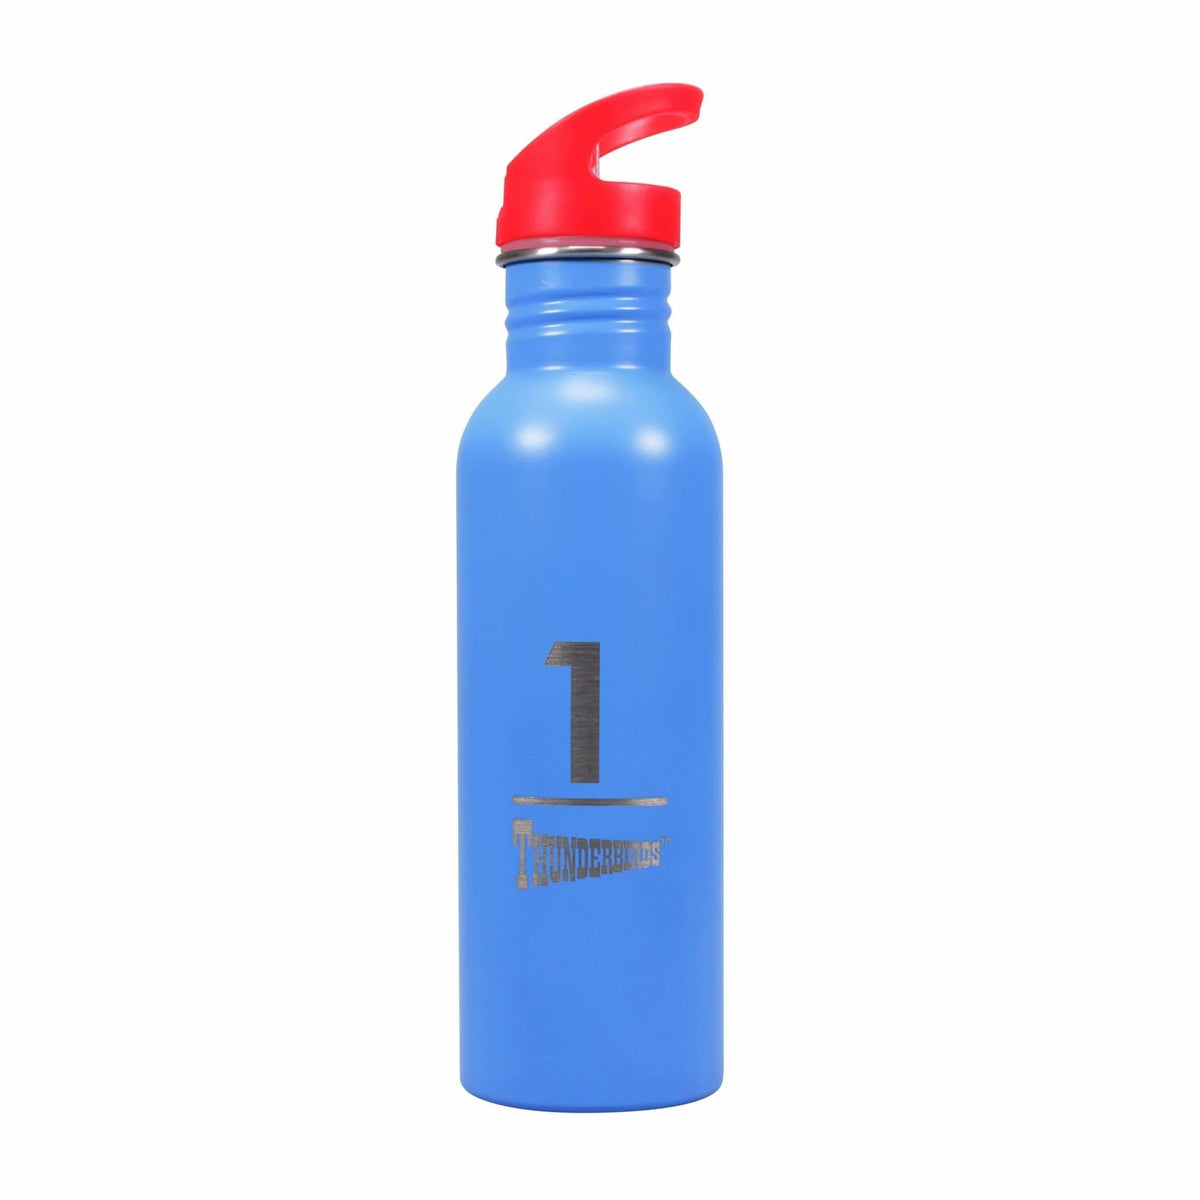 Thunderbird 1 Water Bottle - The Gerry Anderson Store